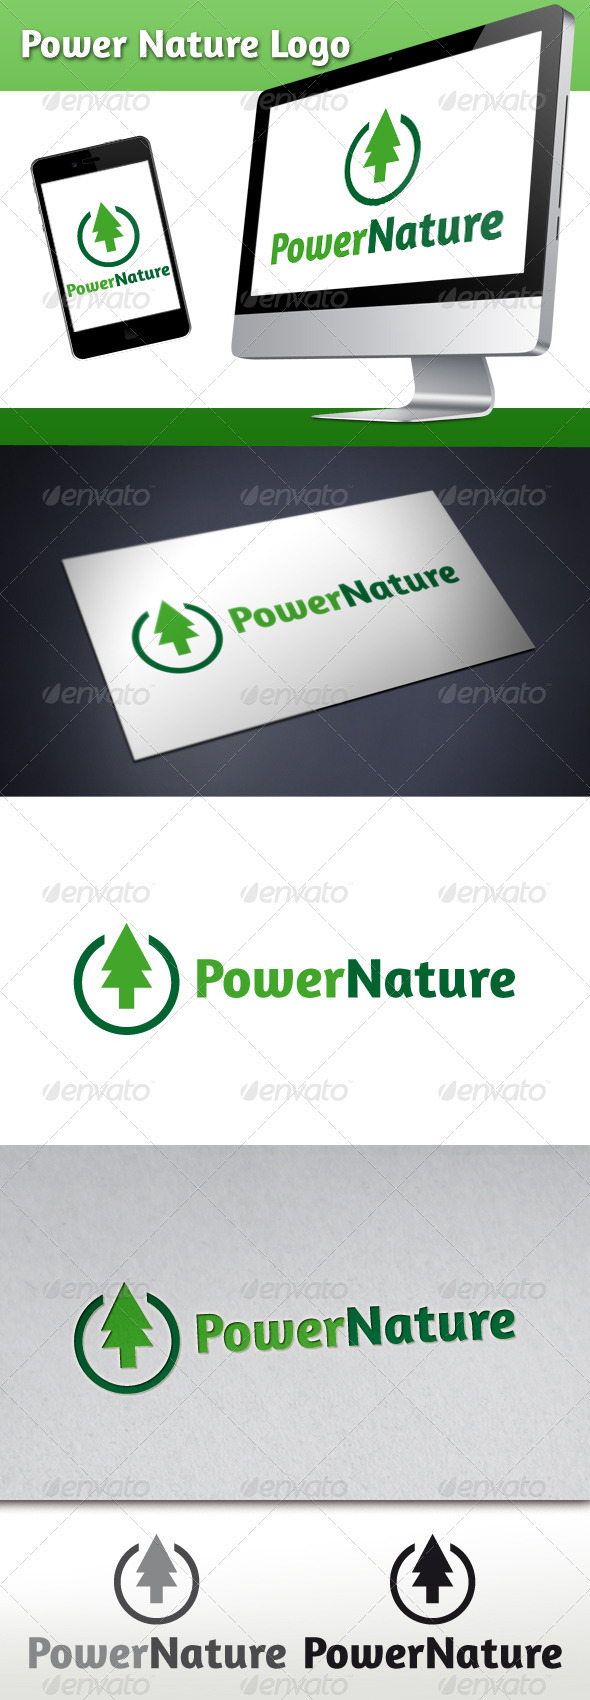 GraphicRiver Power Nature Logo 3293494